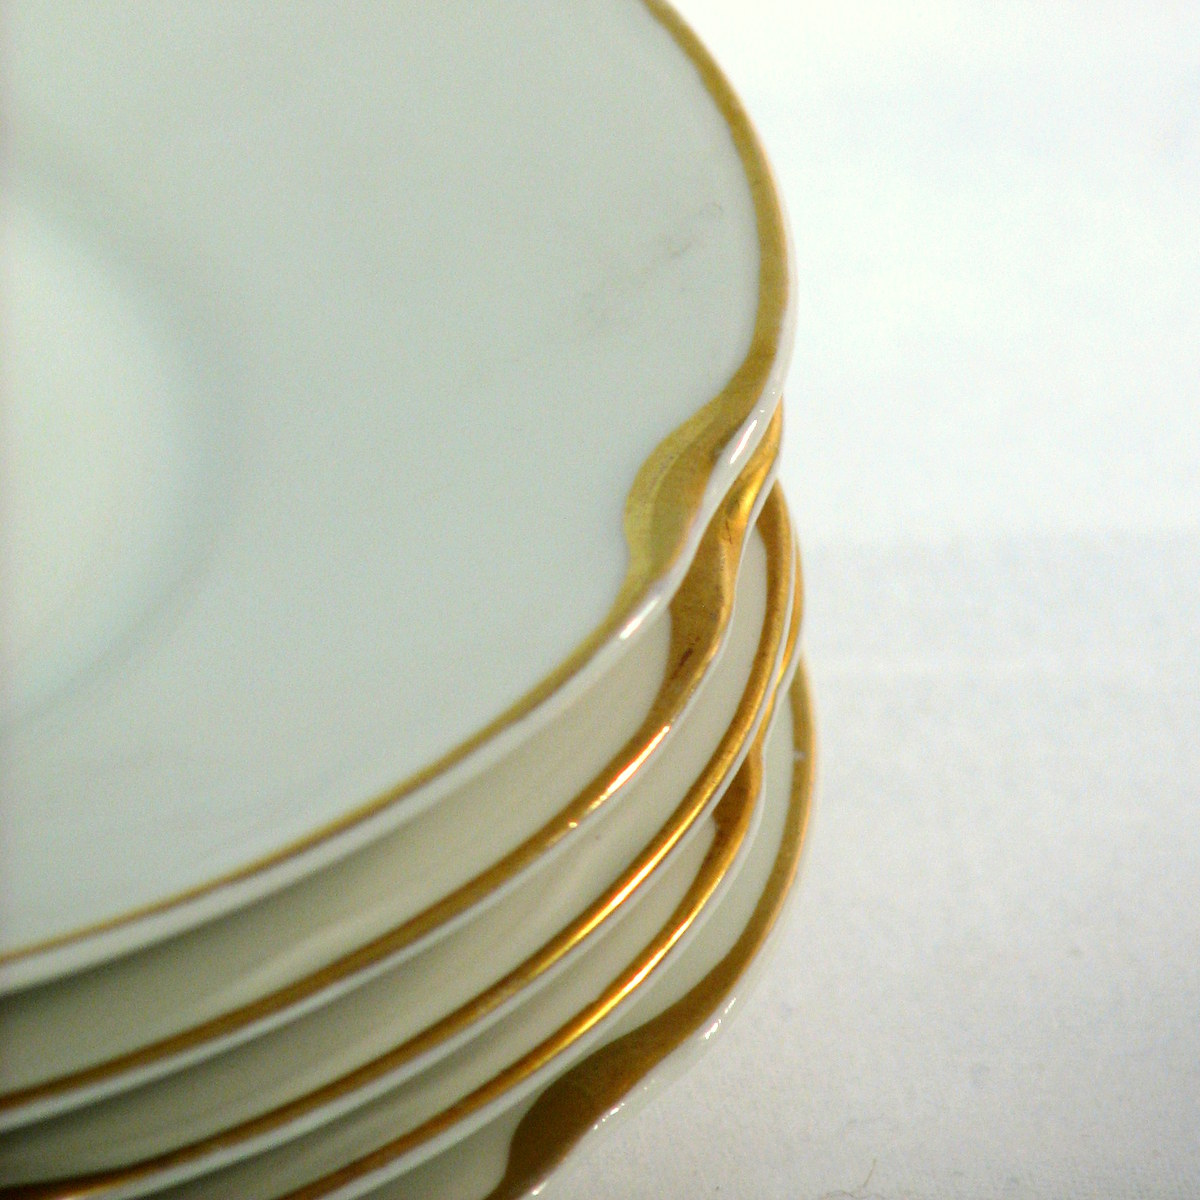 Antique gold rim dessert plates